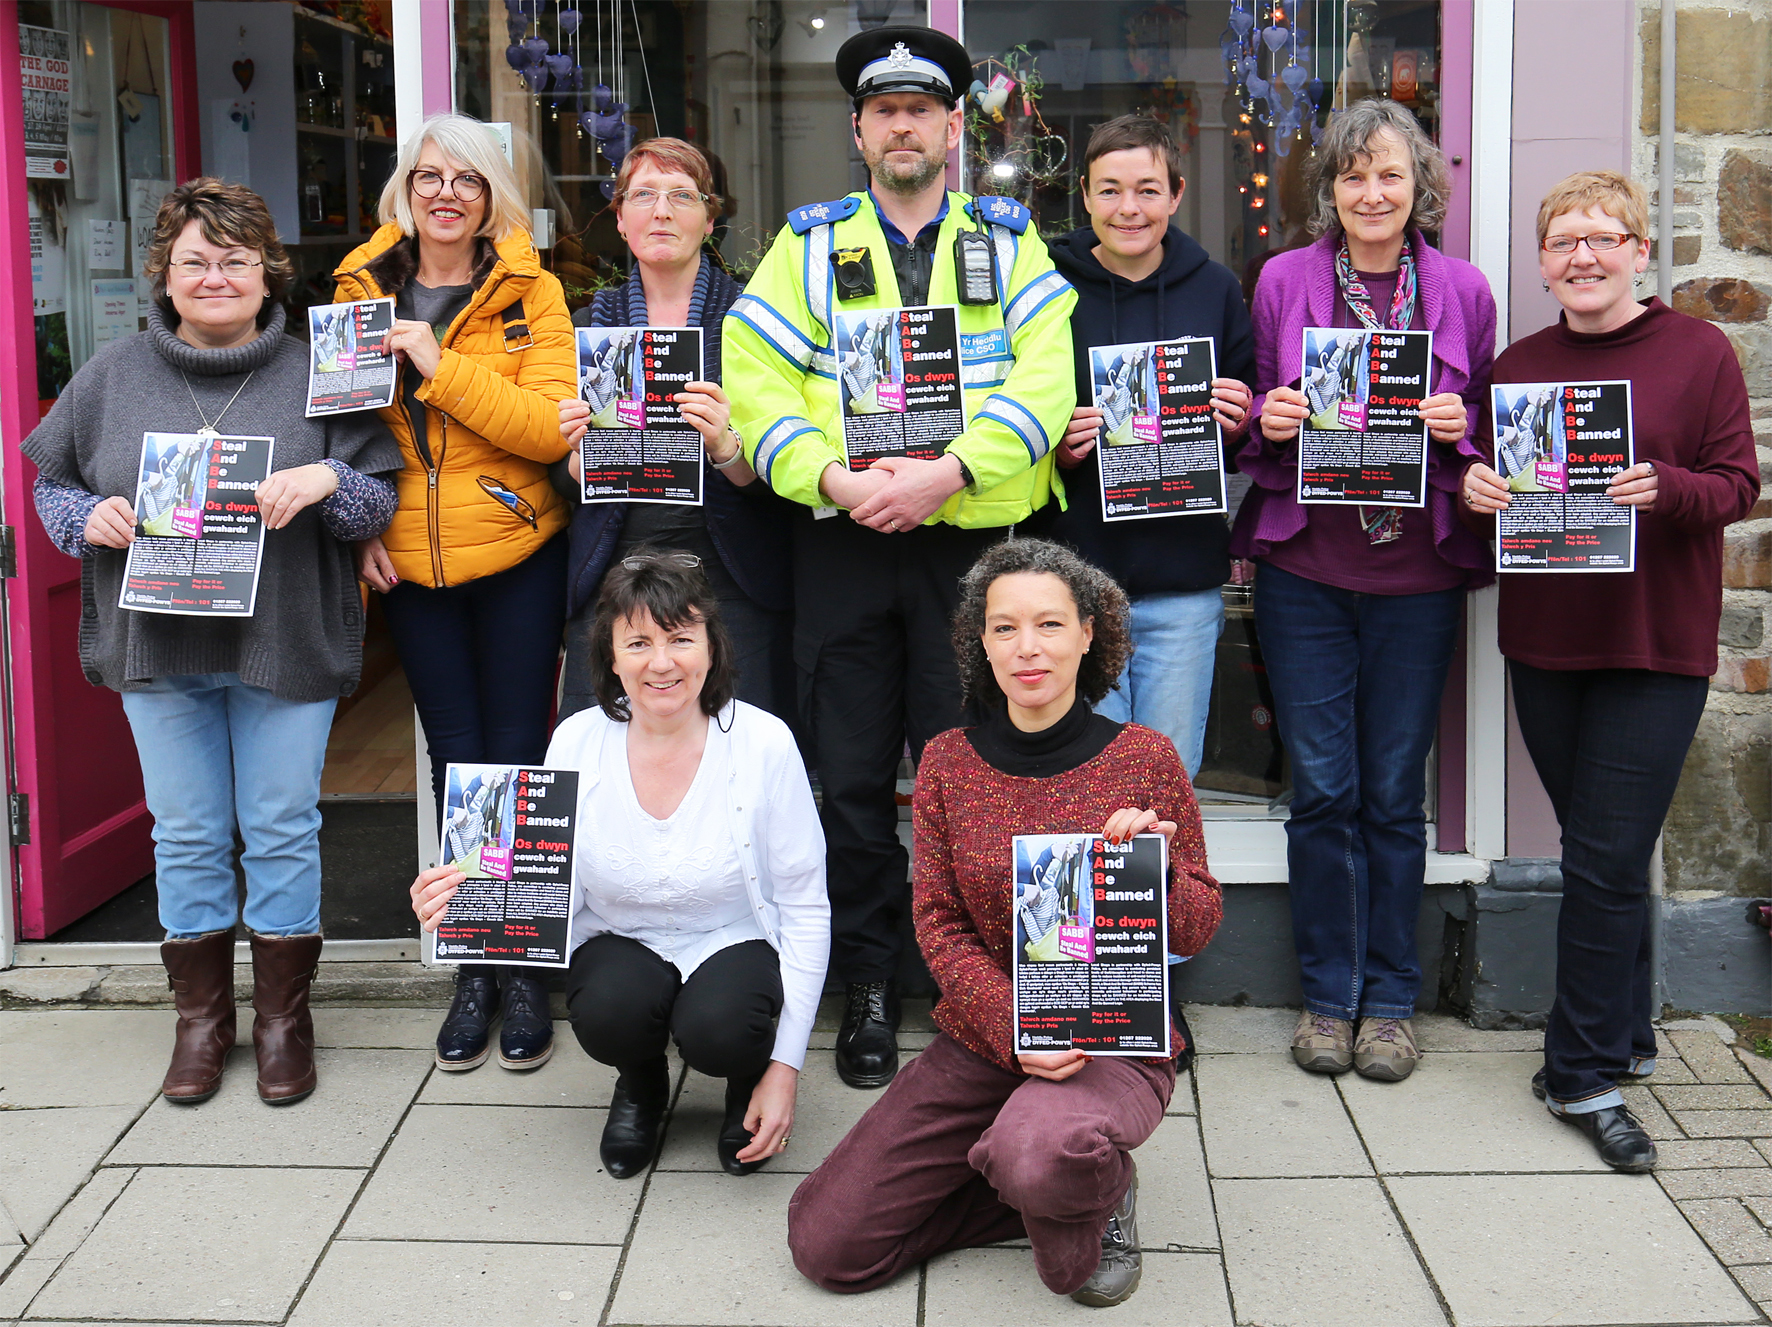 PCSO Jeff Kedward with members of Newcastle Emlyn Traders' Association who are part of the Steal and Be banned scheme that is now up and running. PICTURE: Barry Adams